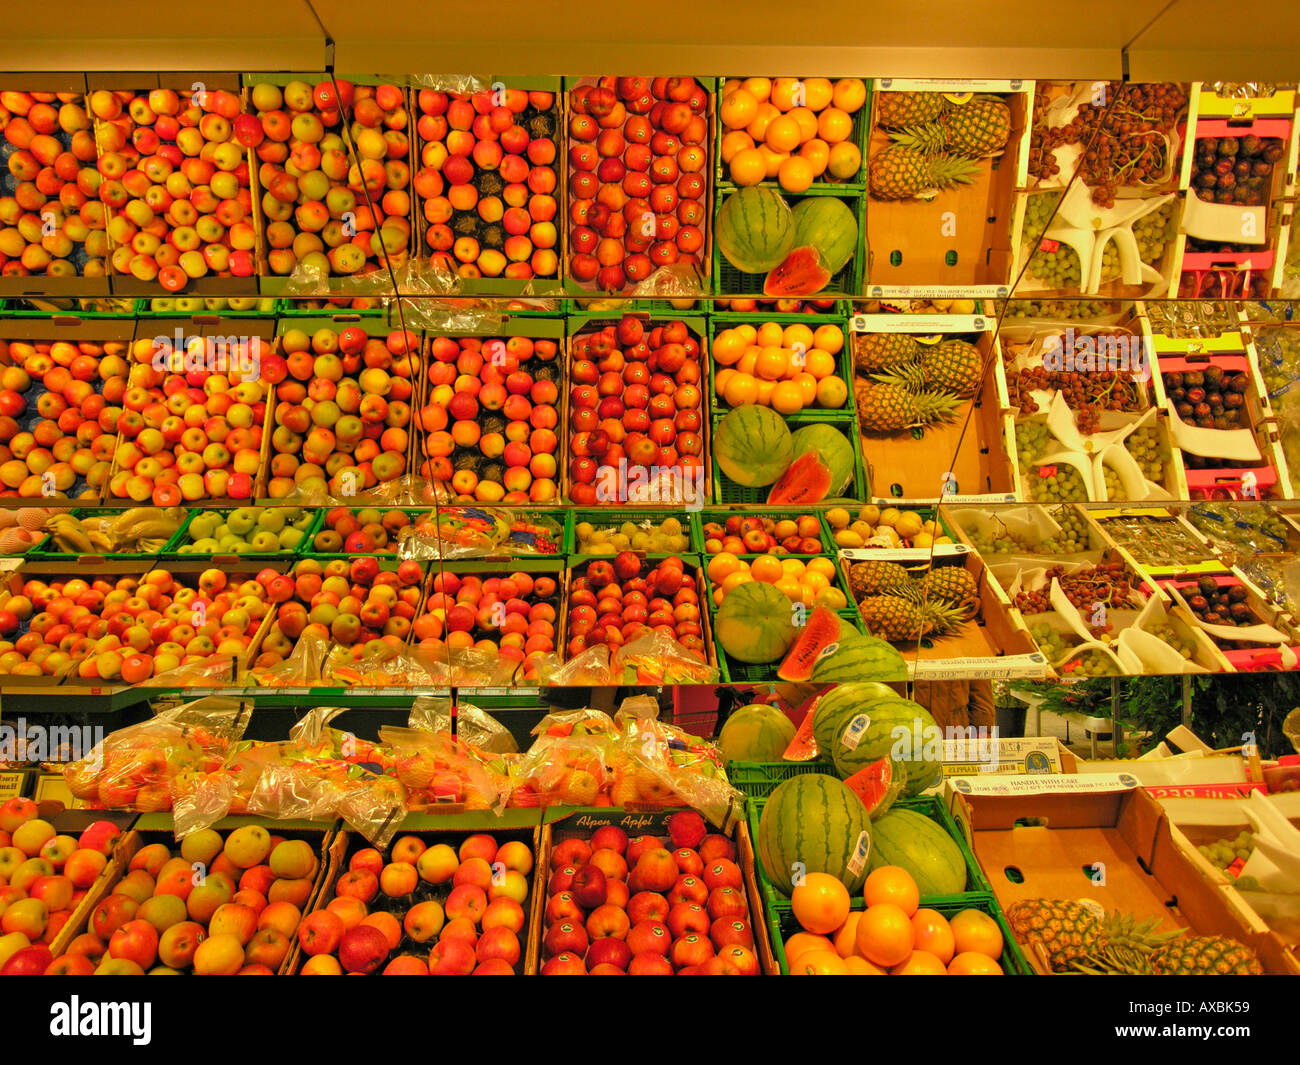 Waterfall Fruit And Veggie Displays: Display For Fresh Fruit And Vegetables In A Supermarket